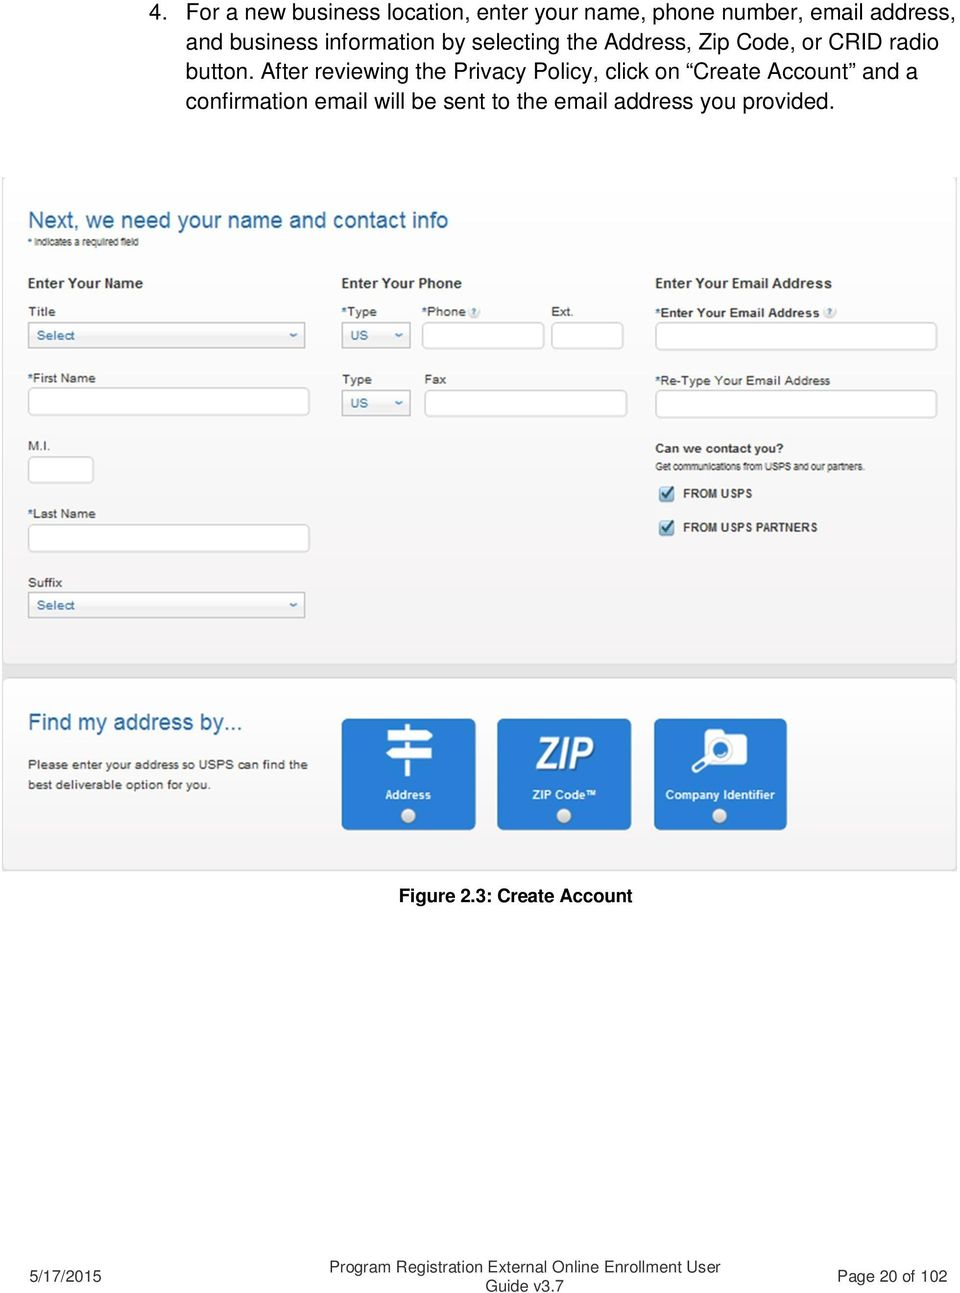 After reviewing the Privacy Policy, click on Create Account and a confirmation